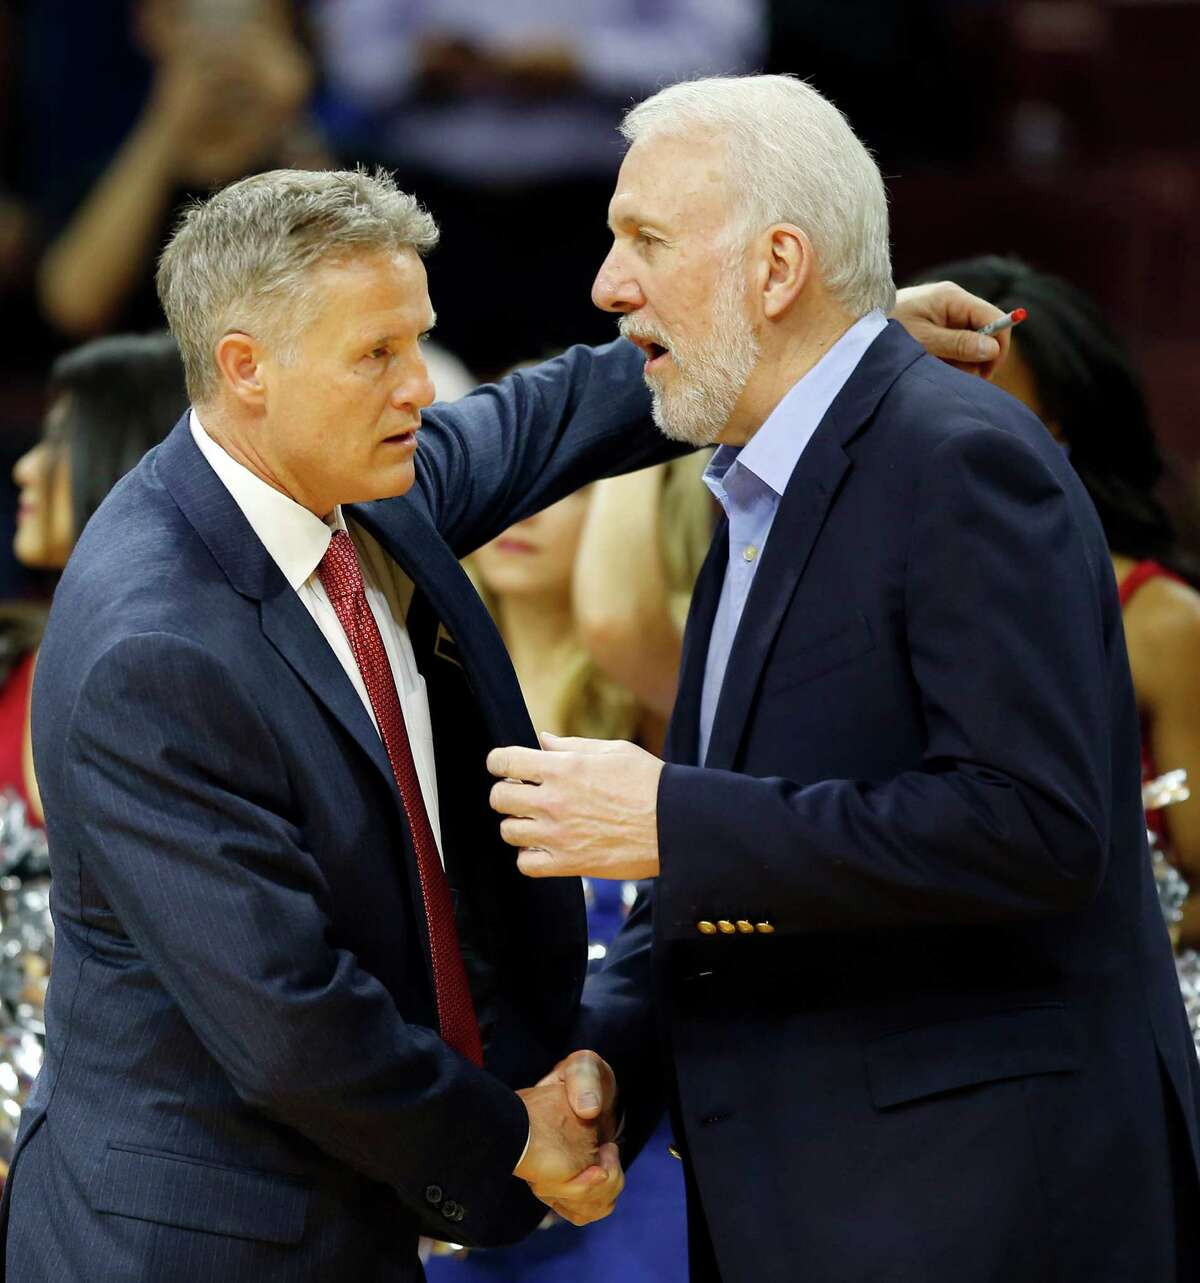 Philadelphia 76ers Head Coach Brett Brown meets San Antonio Spurs Head Coach Gregg Popovich before the two teams played each other on Monday, Dec. 1, 2014, at Wells Fargo Center in Philadelphia. (Yong Kim/Philadelphia Inquirer/TNS)